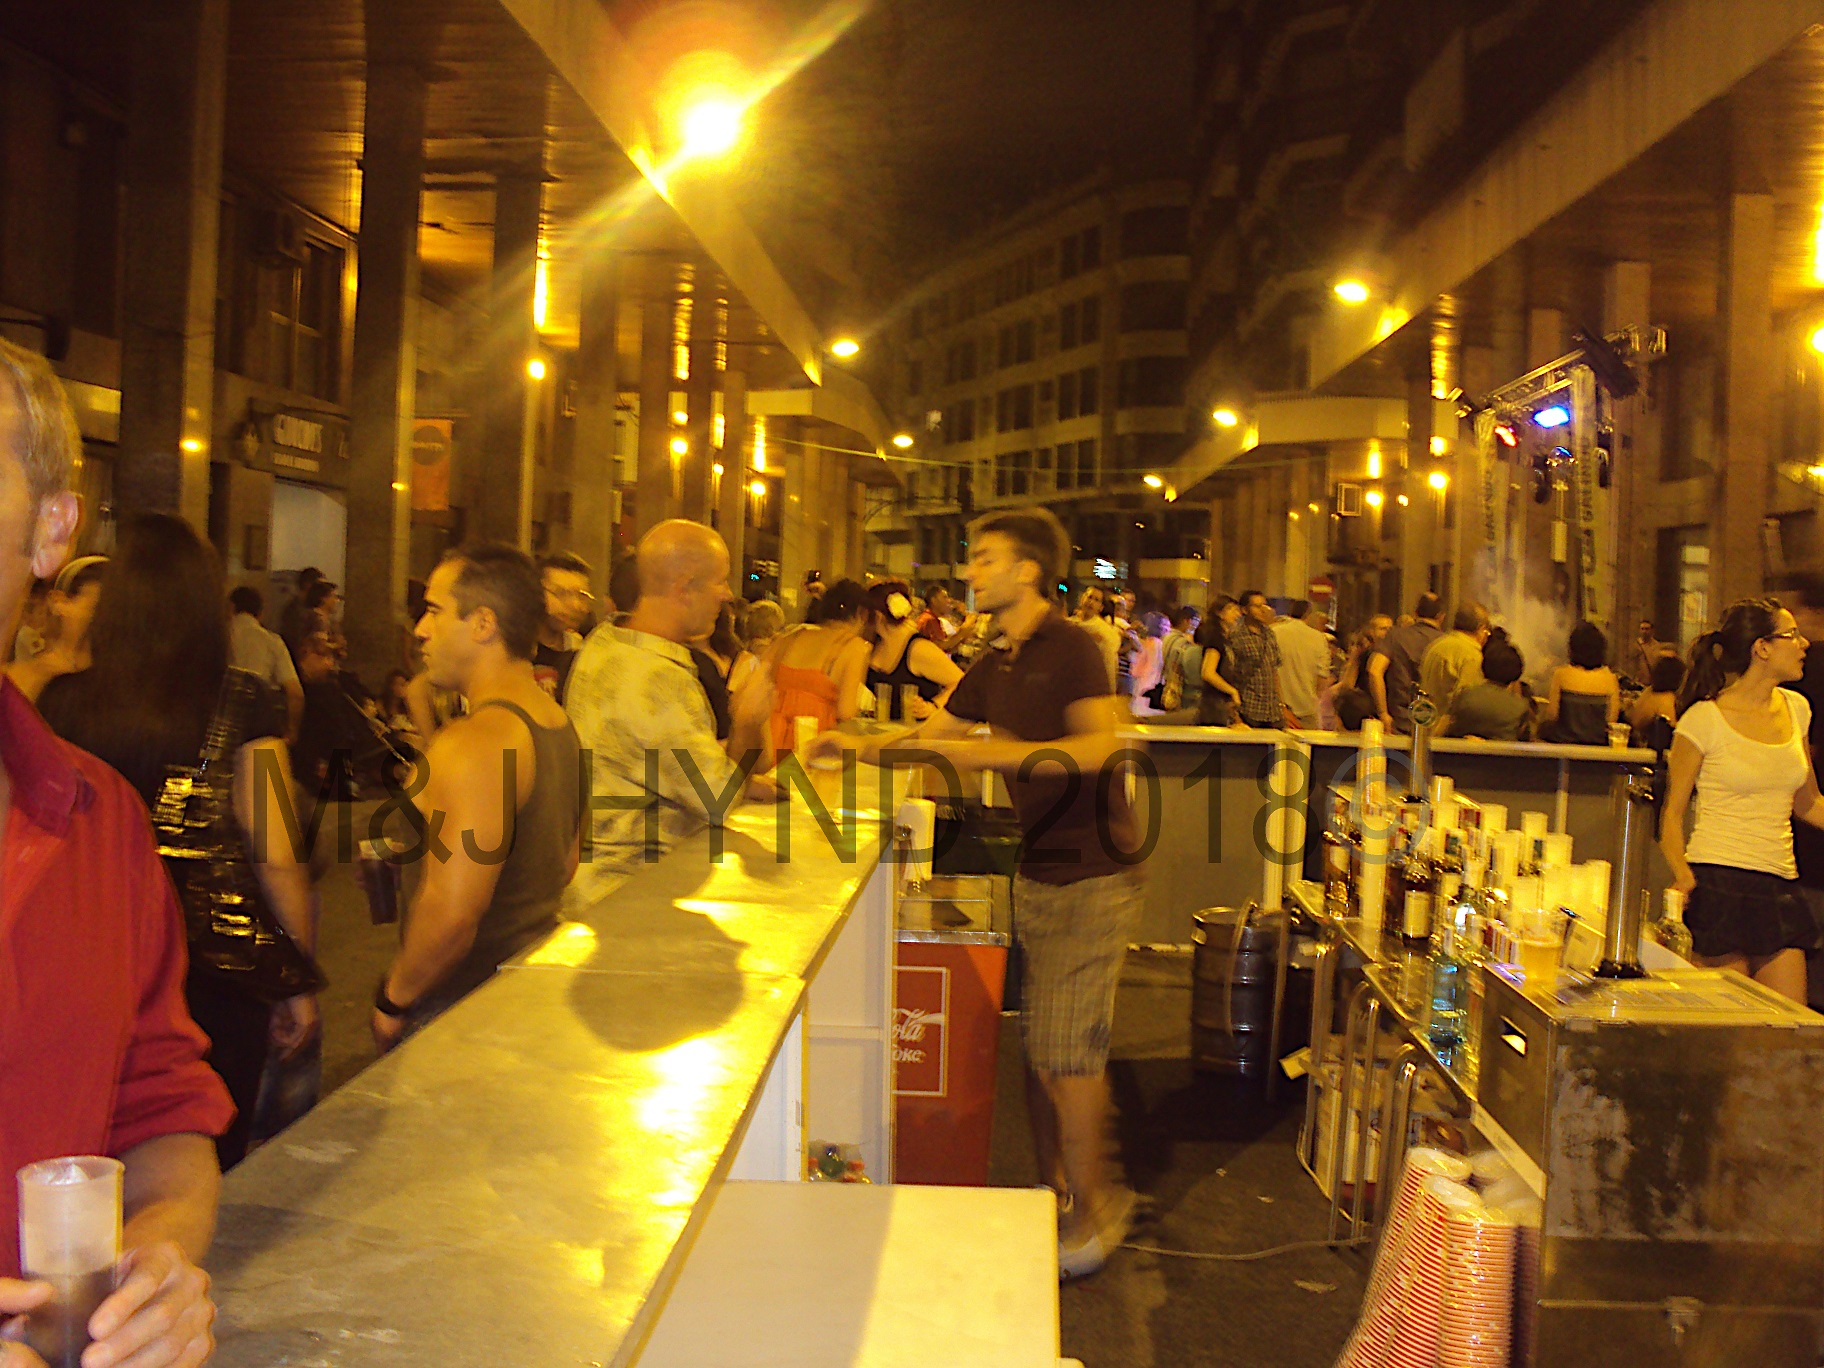 typically a busy street, tonight a huge open bar